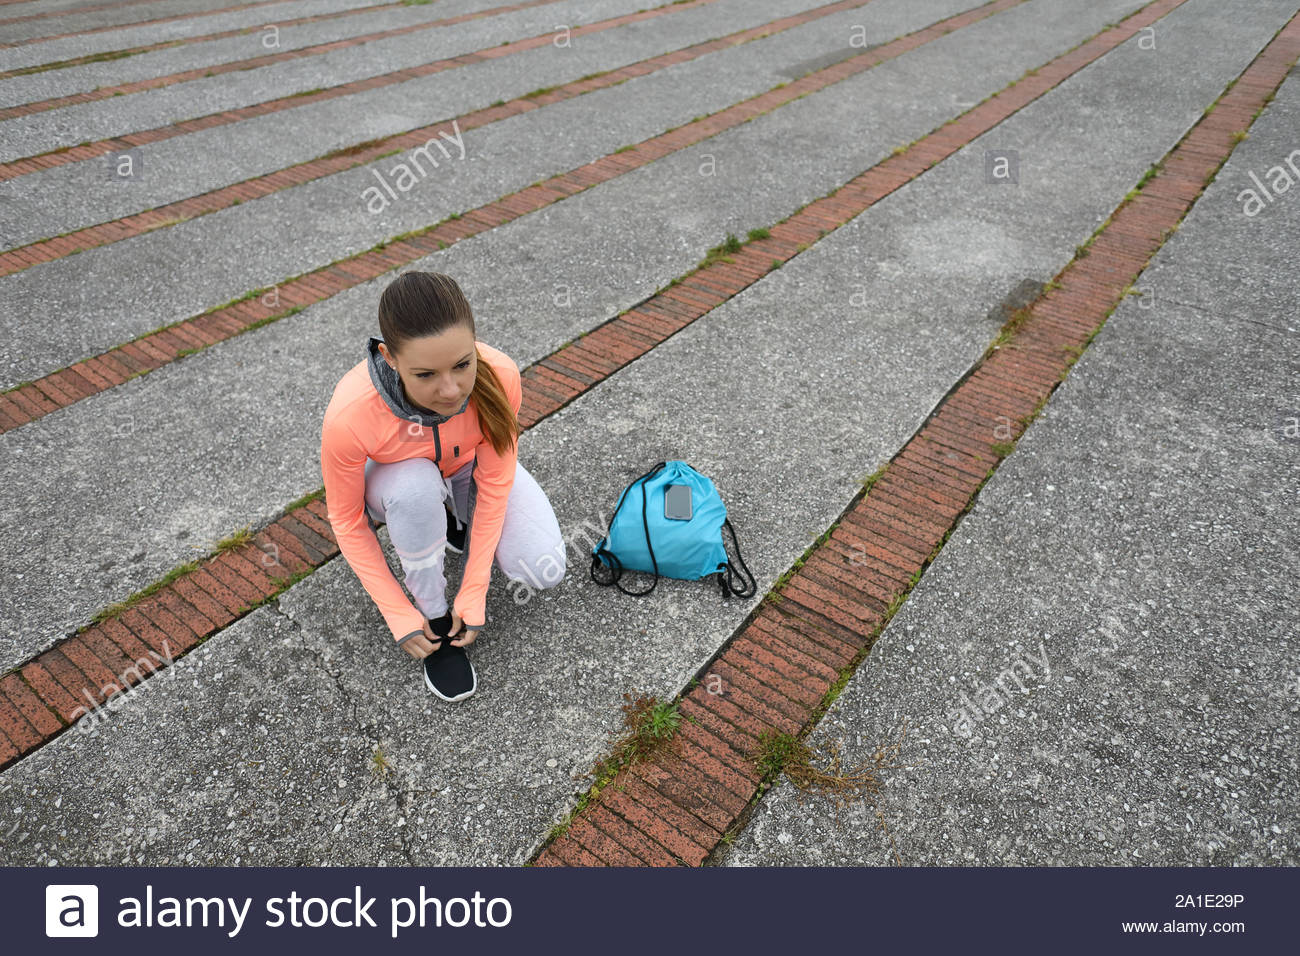 Young female athlete getting ready for outdoor running workout. Sporty girl lacing footwear outside. Stock Photo